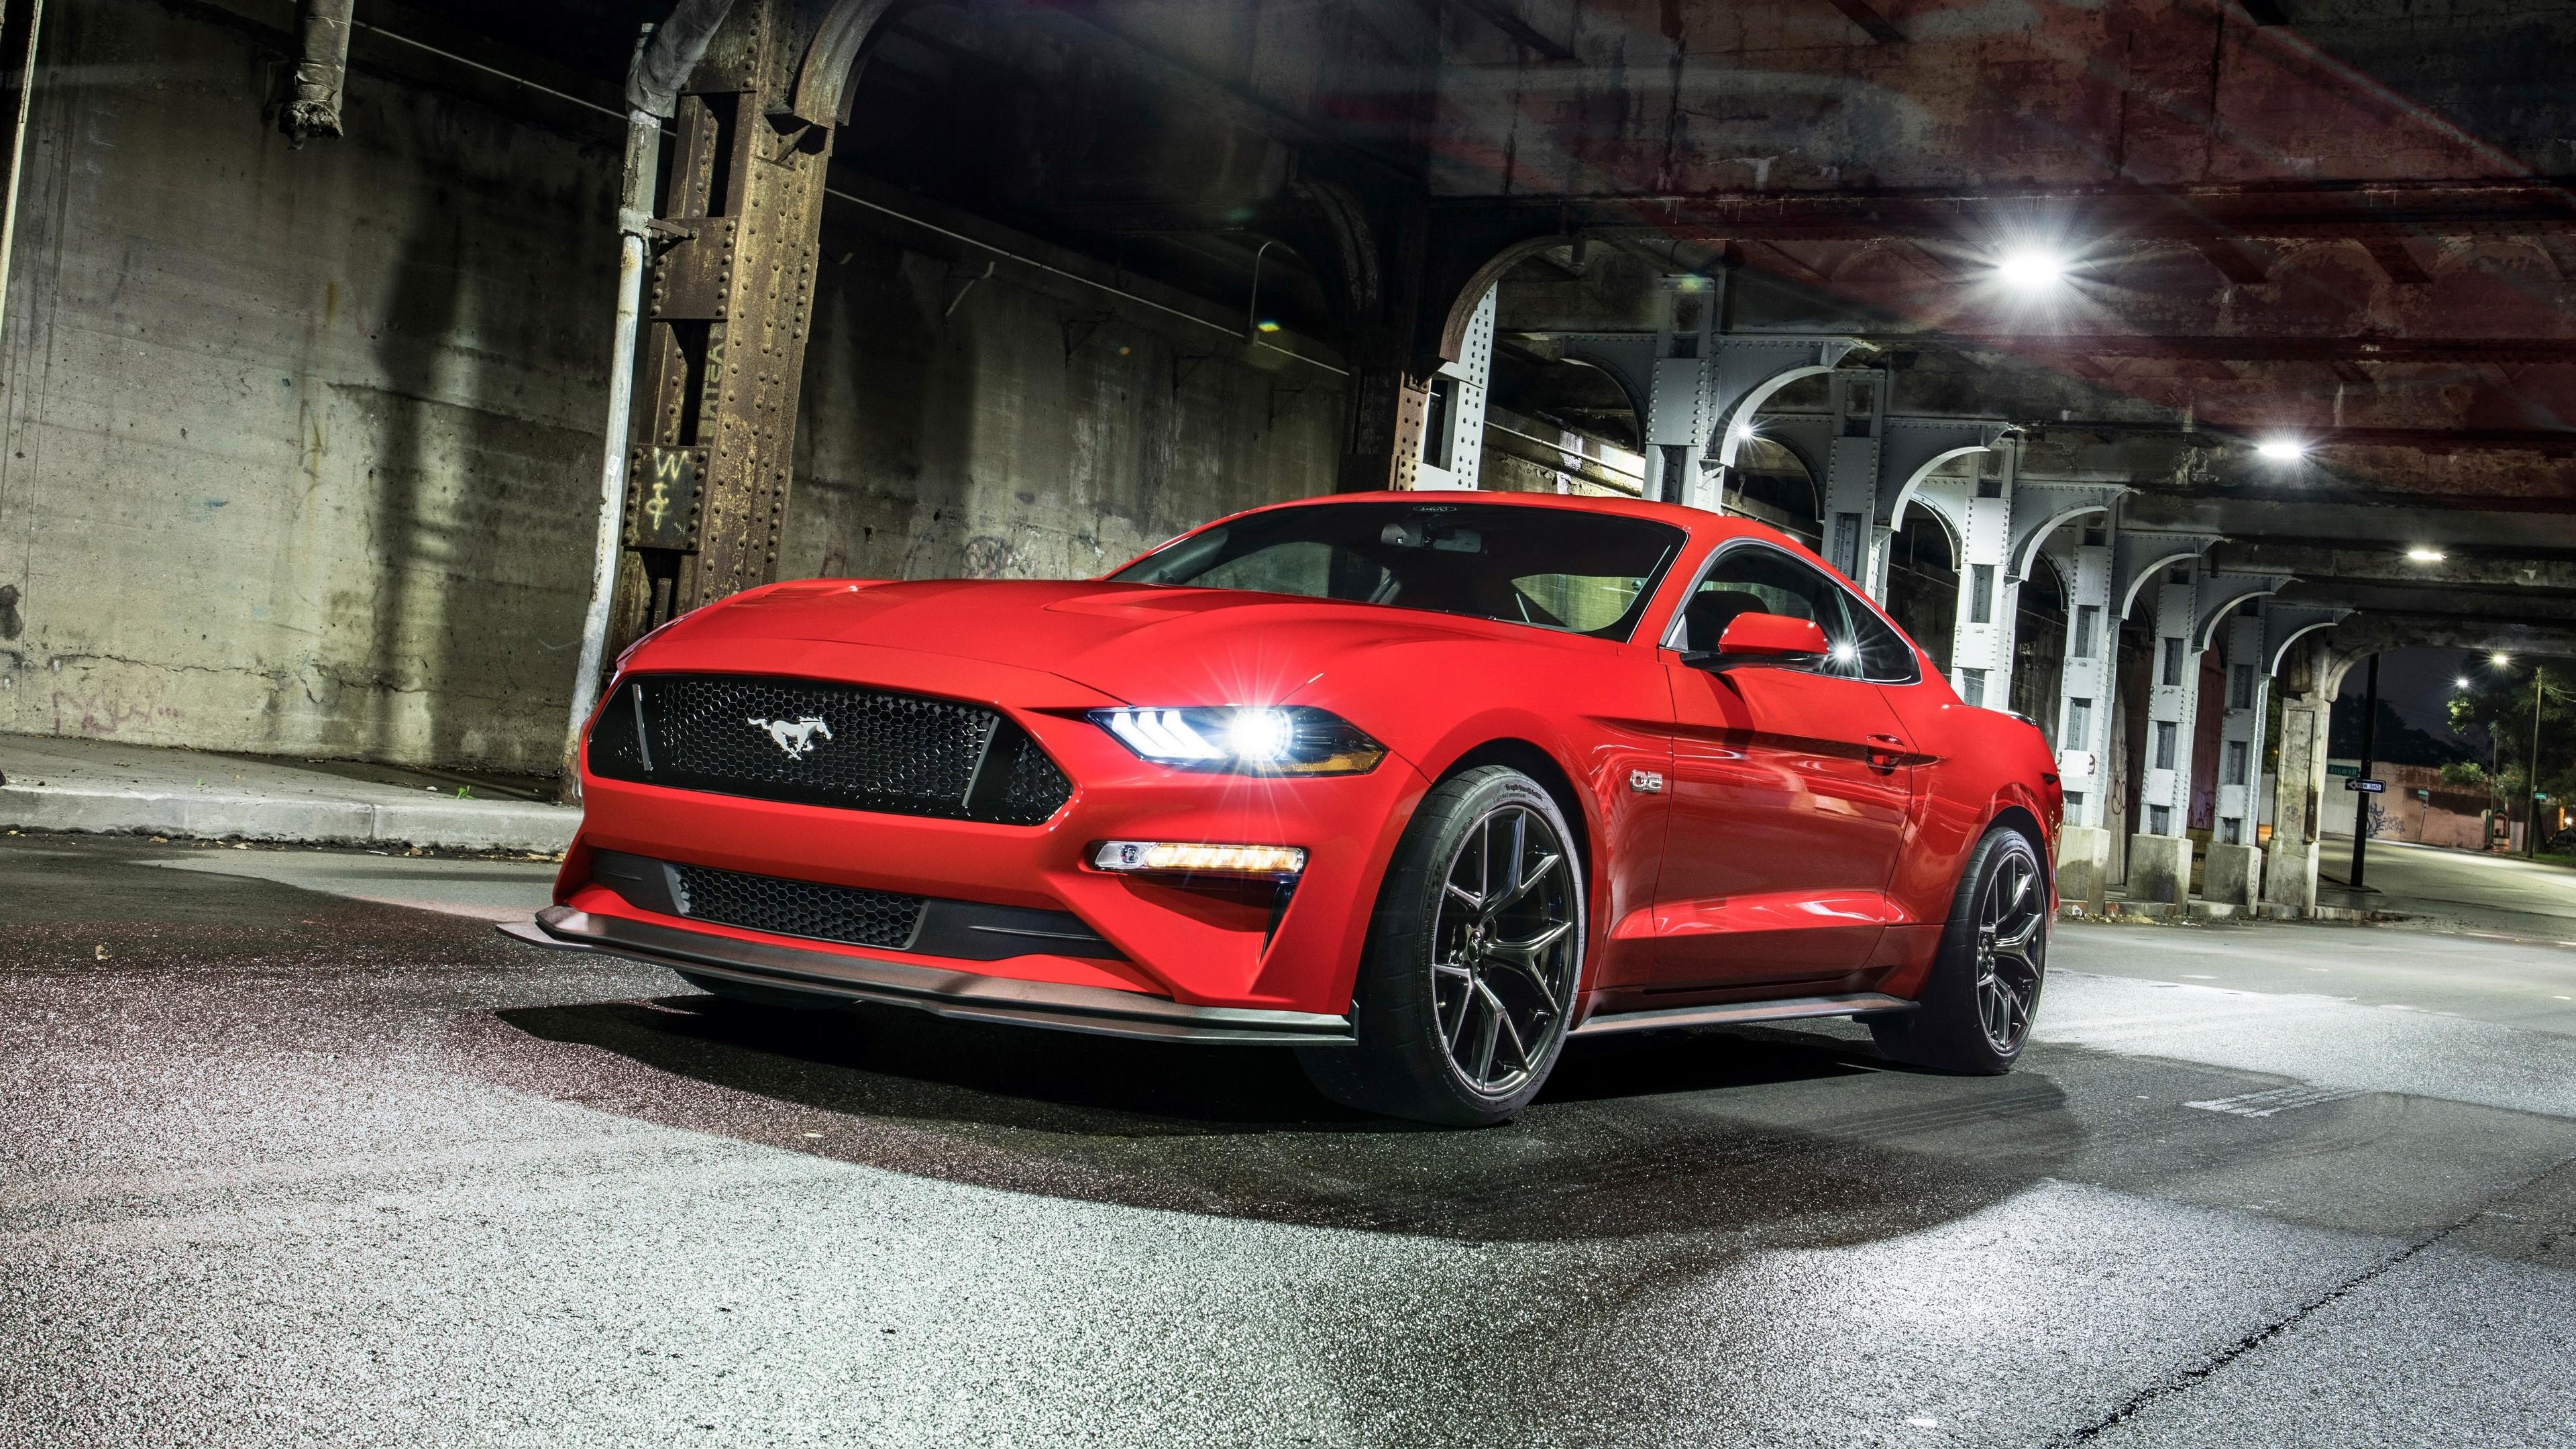 Ford Mustang GT 4K Wallpapers - Wallpaper Cave